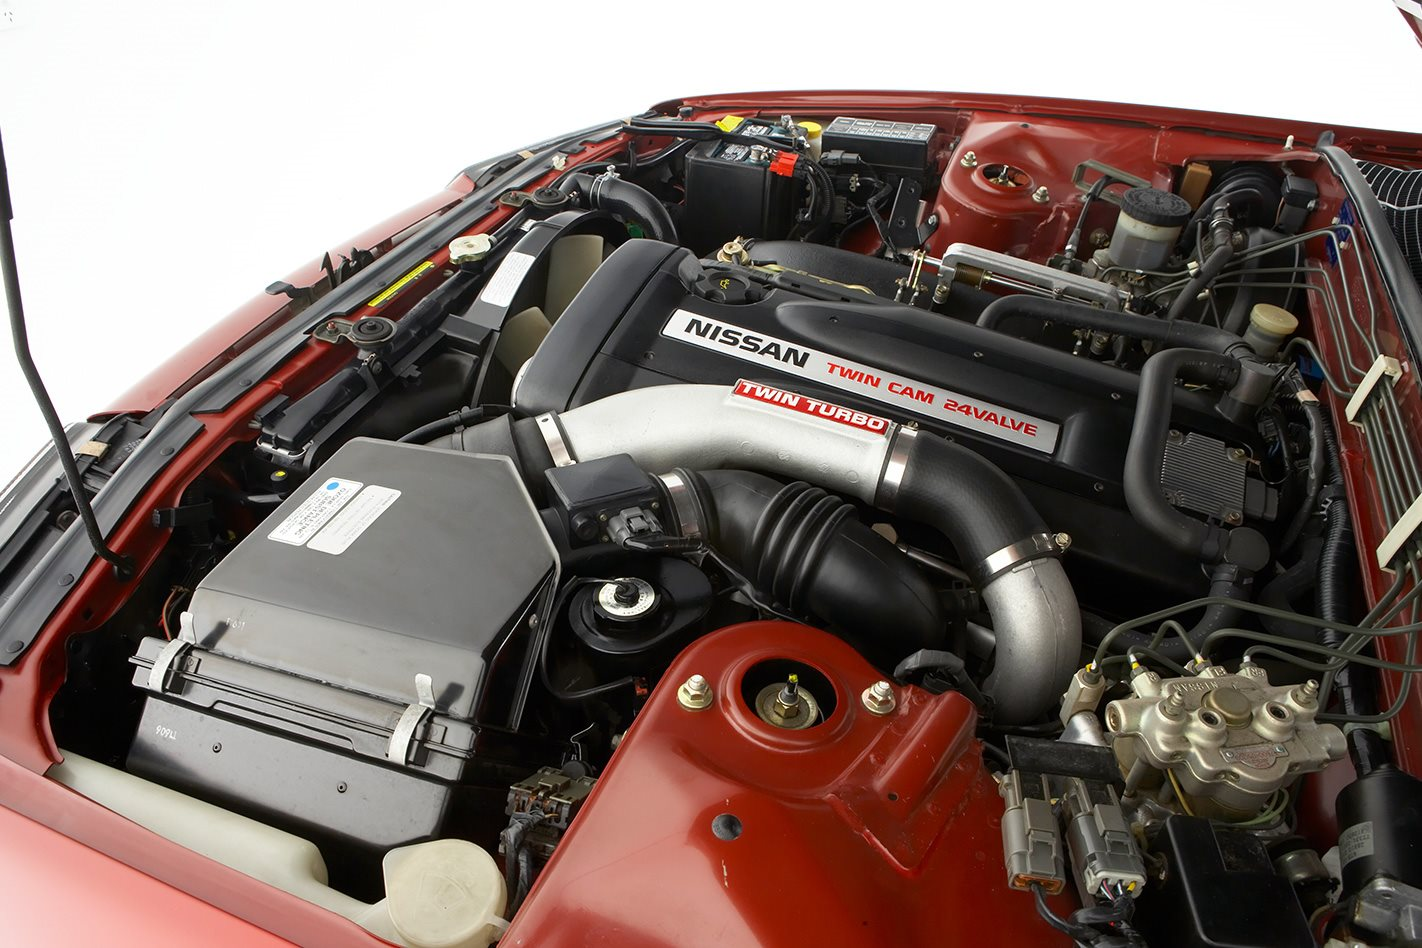 1991-Nissan-Skyline-GT-R-engine.jpg